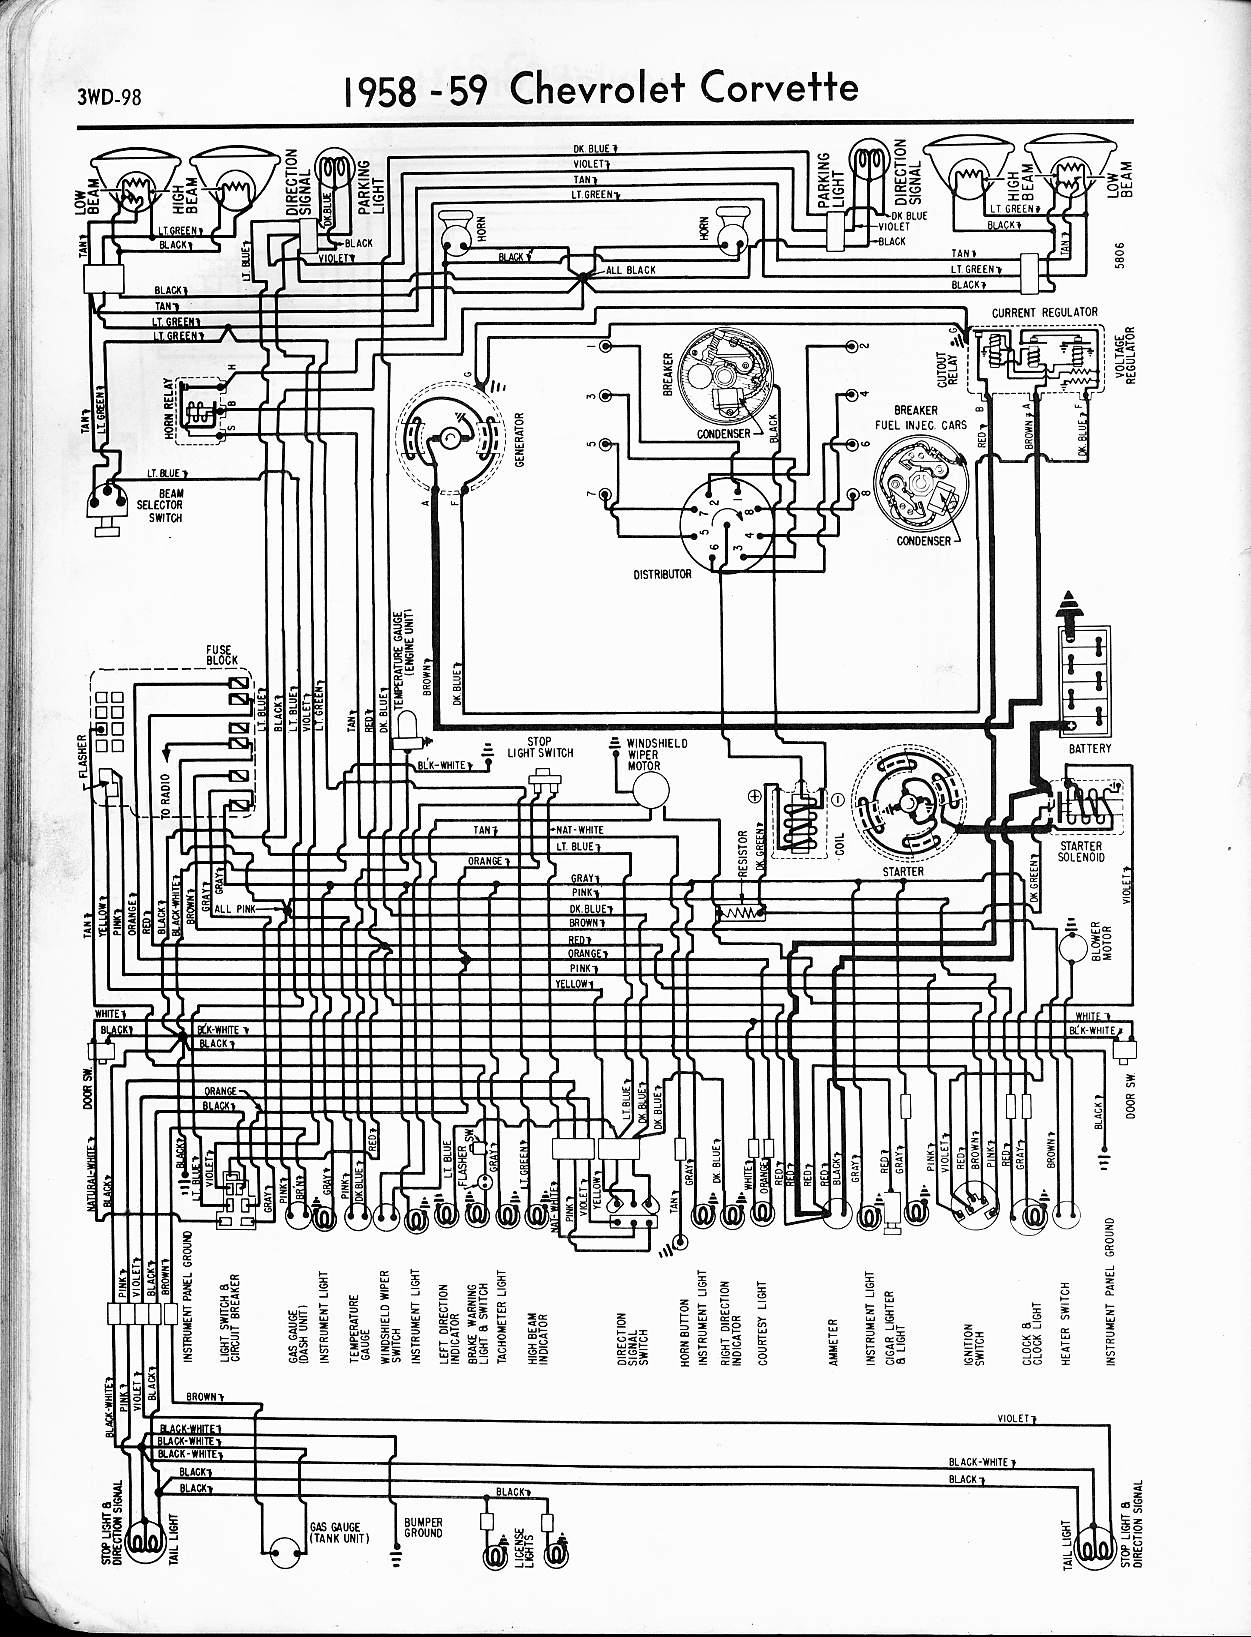 case 580k wiring schematic | free wiring diagram case starter wiring diagram